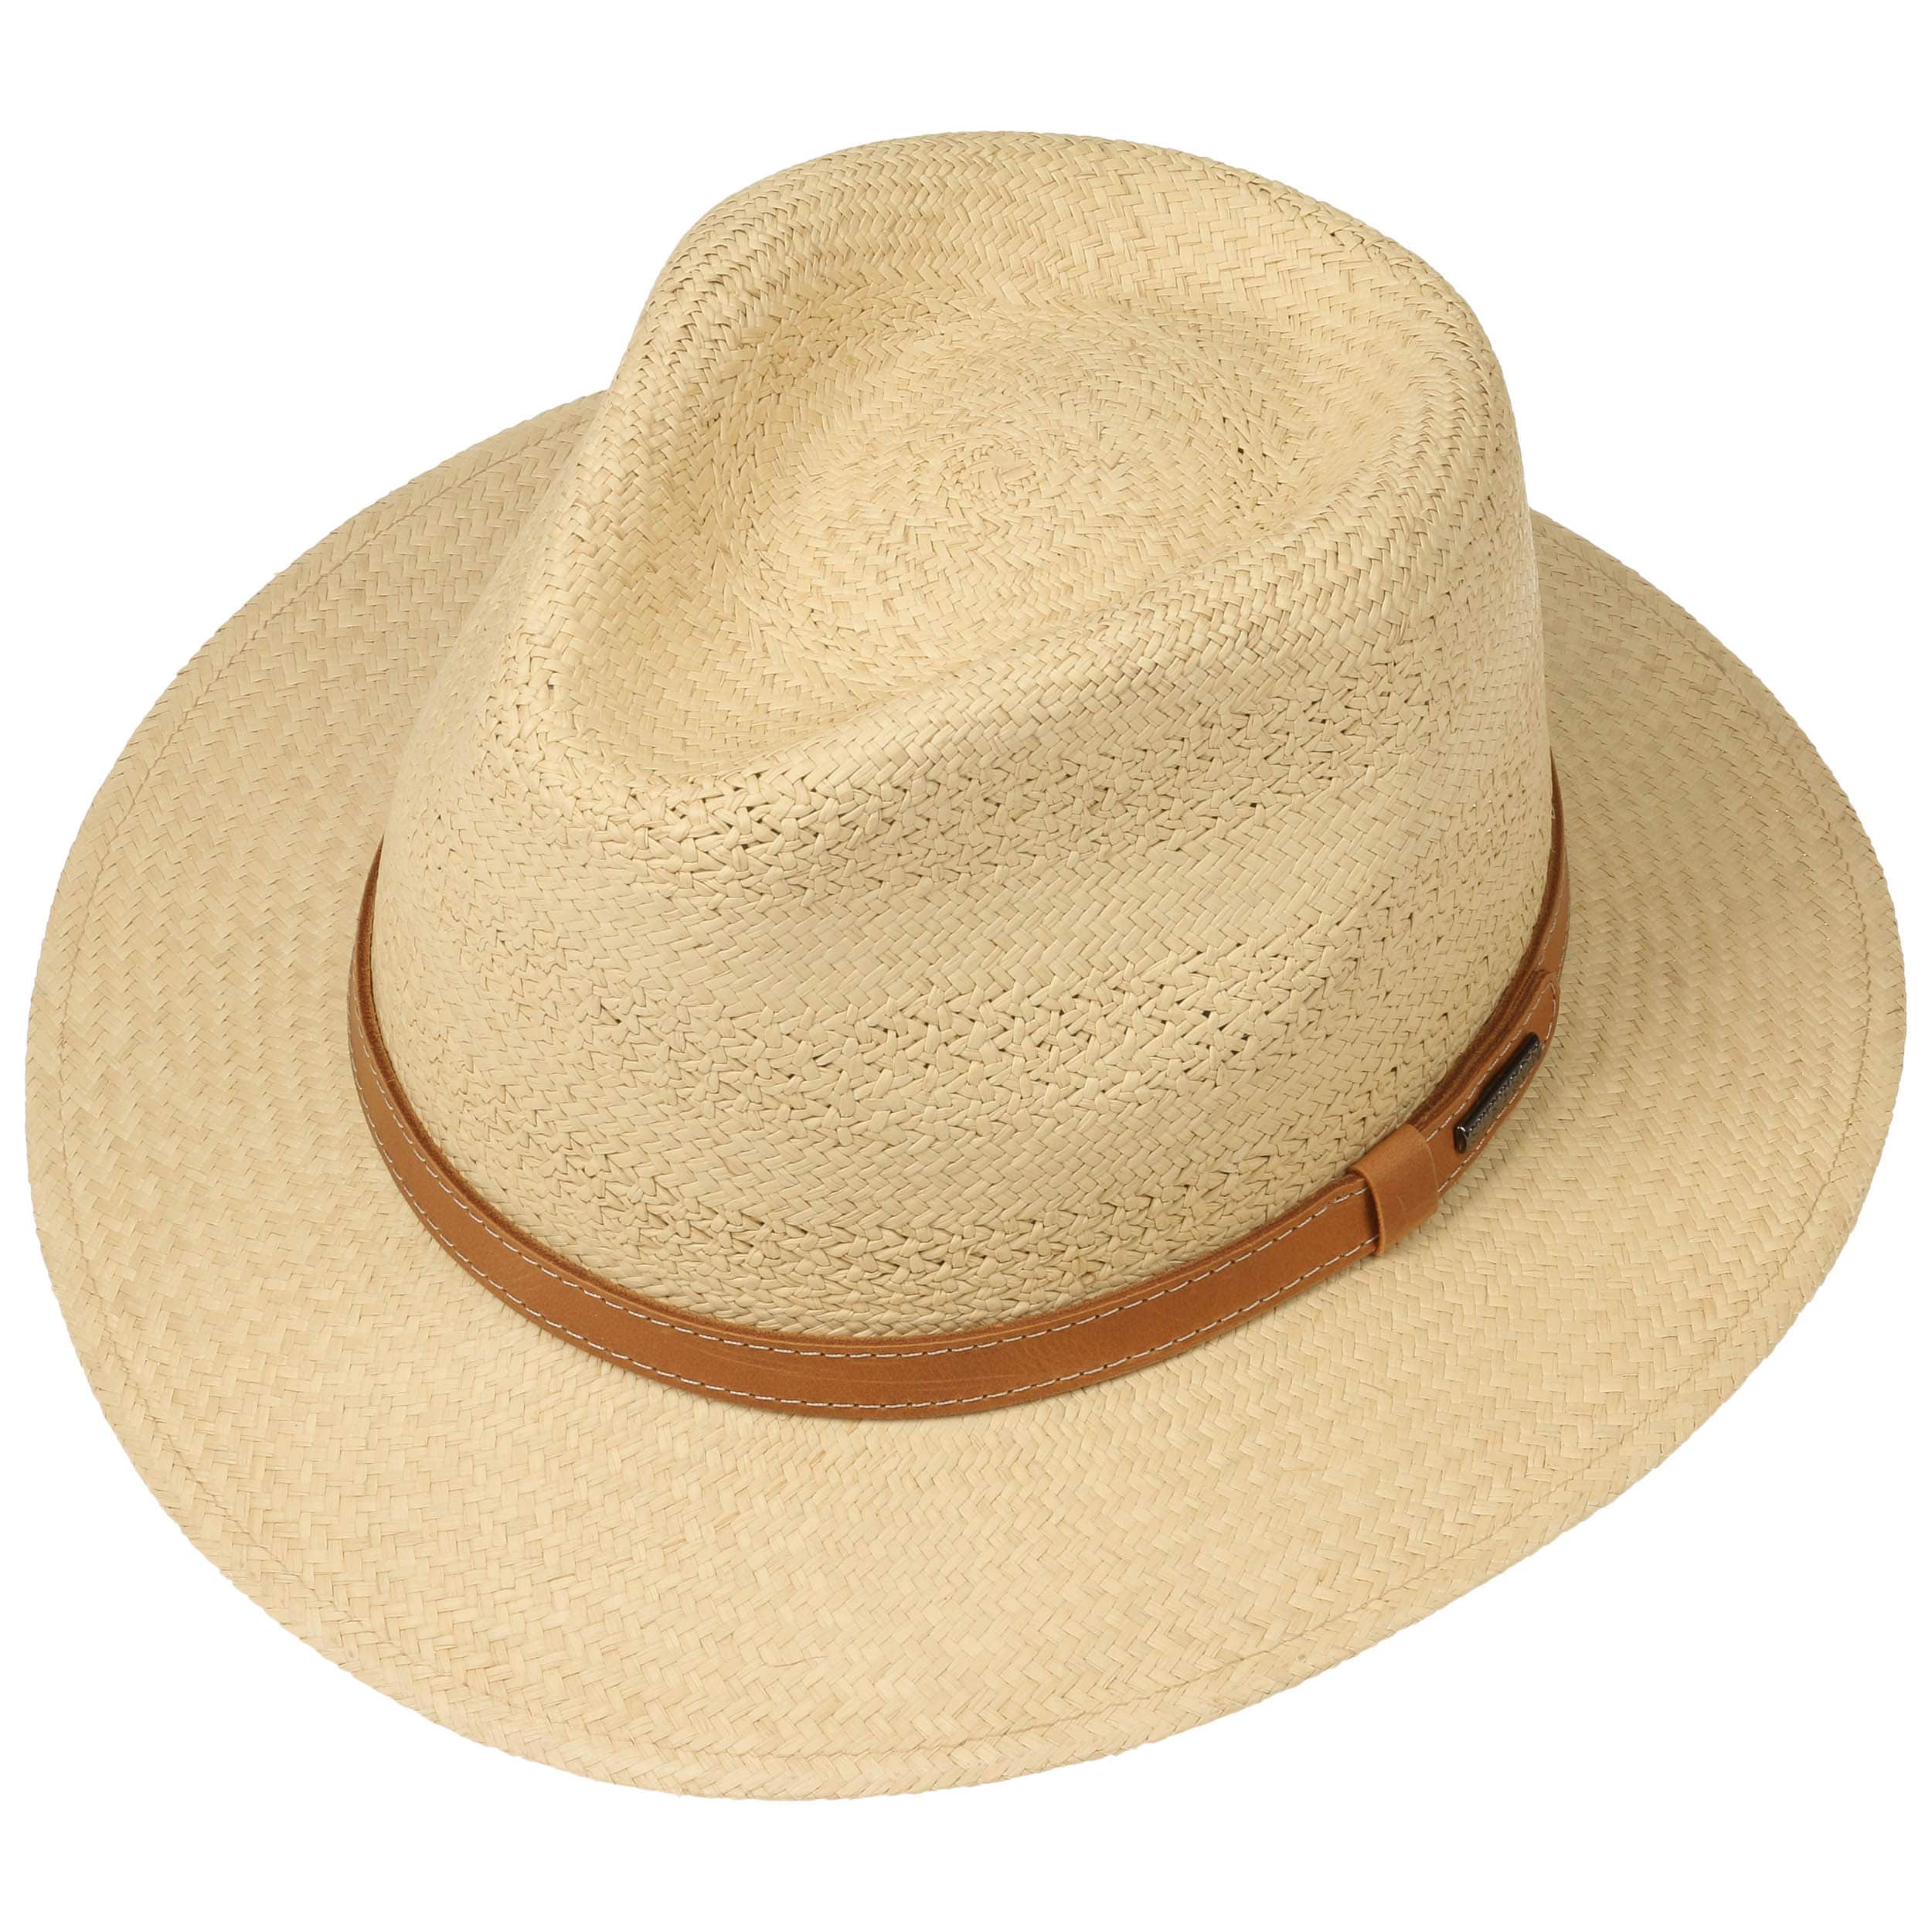 a903a2612c8 Lexerell Traveller Panama Hat by Stetson - nature 1 ...